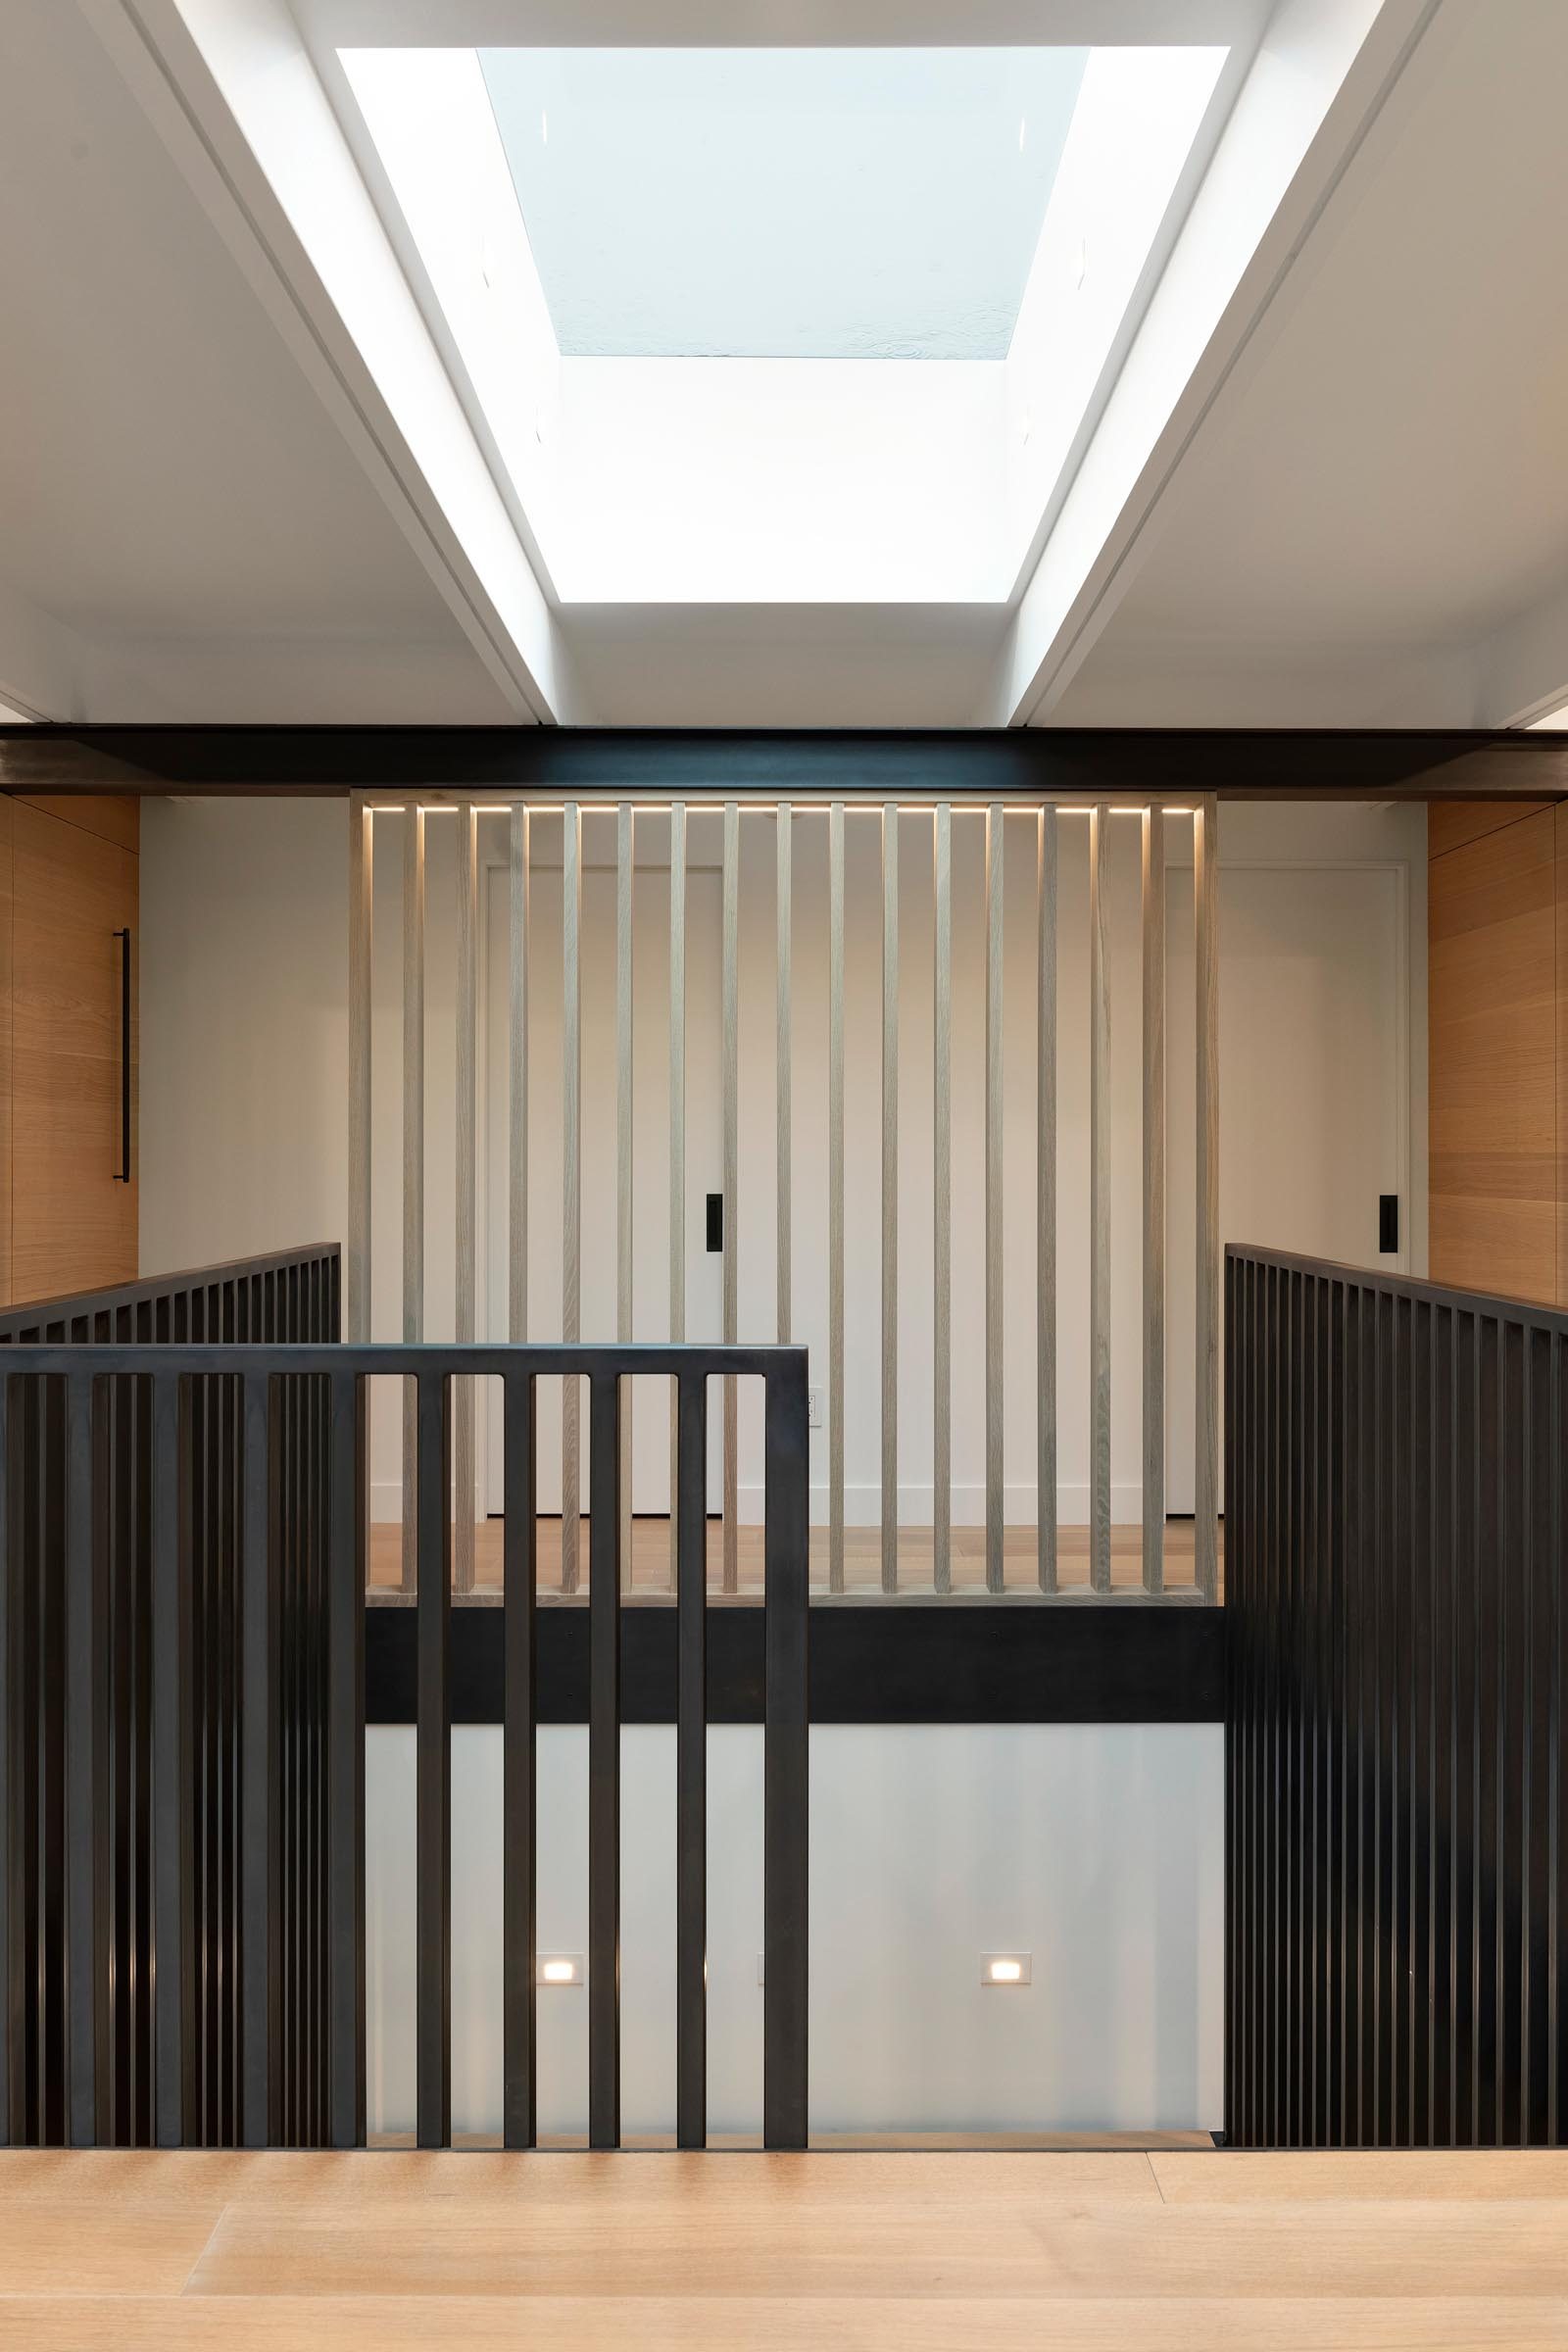 A skylight by the front door filters natural light through to the staircase that leads to the lower level of the home and features black handrails.